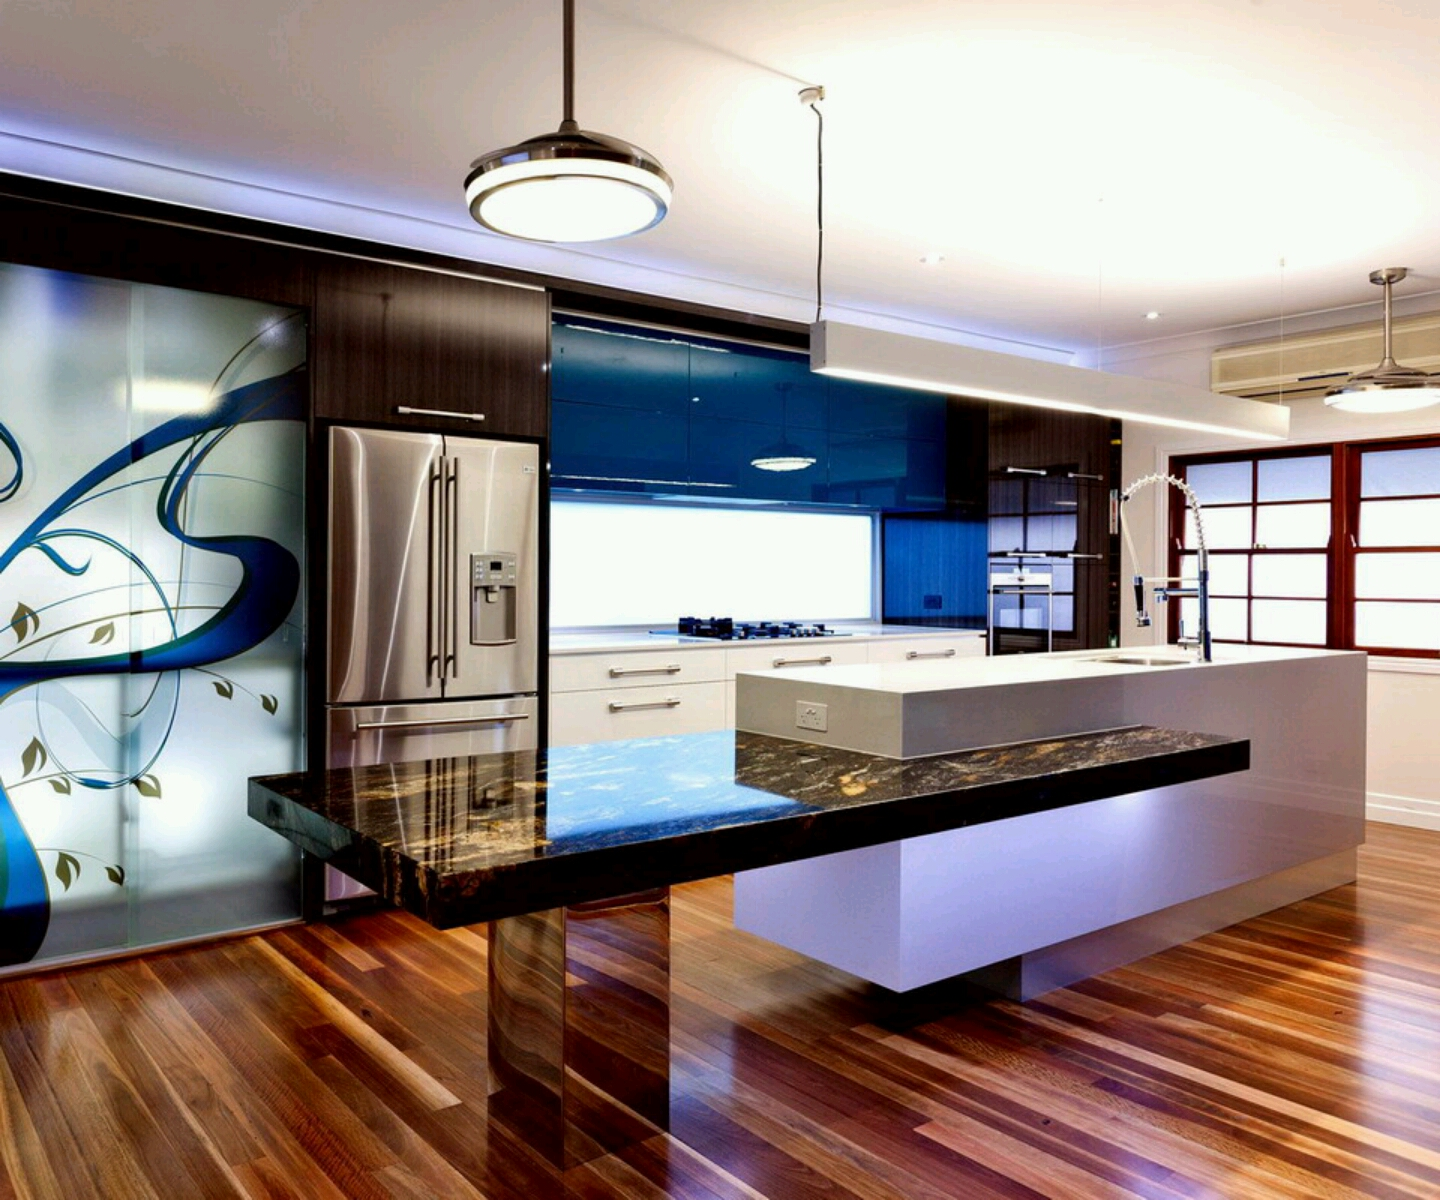 Ultra modern kitchen designs ideas new home designs Kitchen design pictures modern